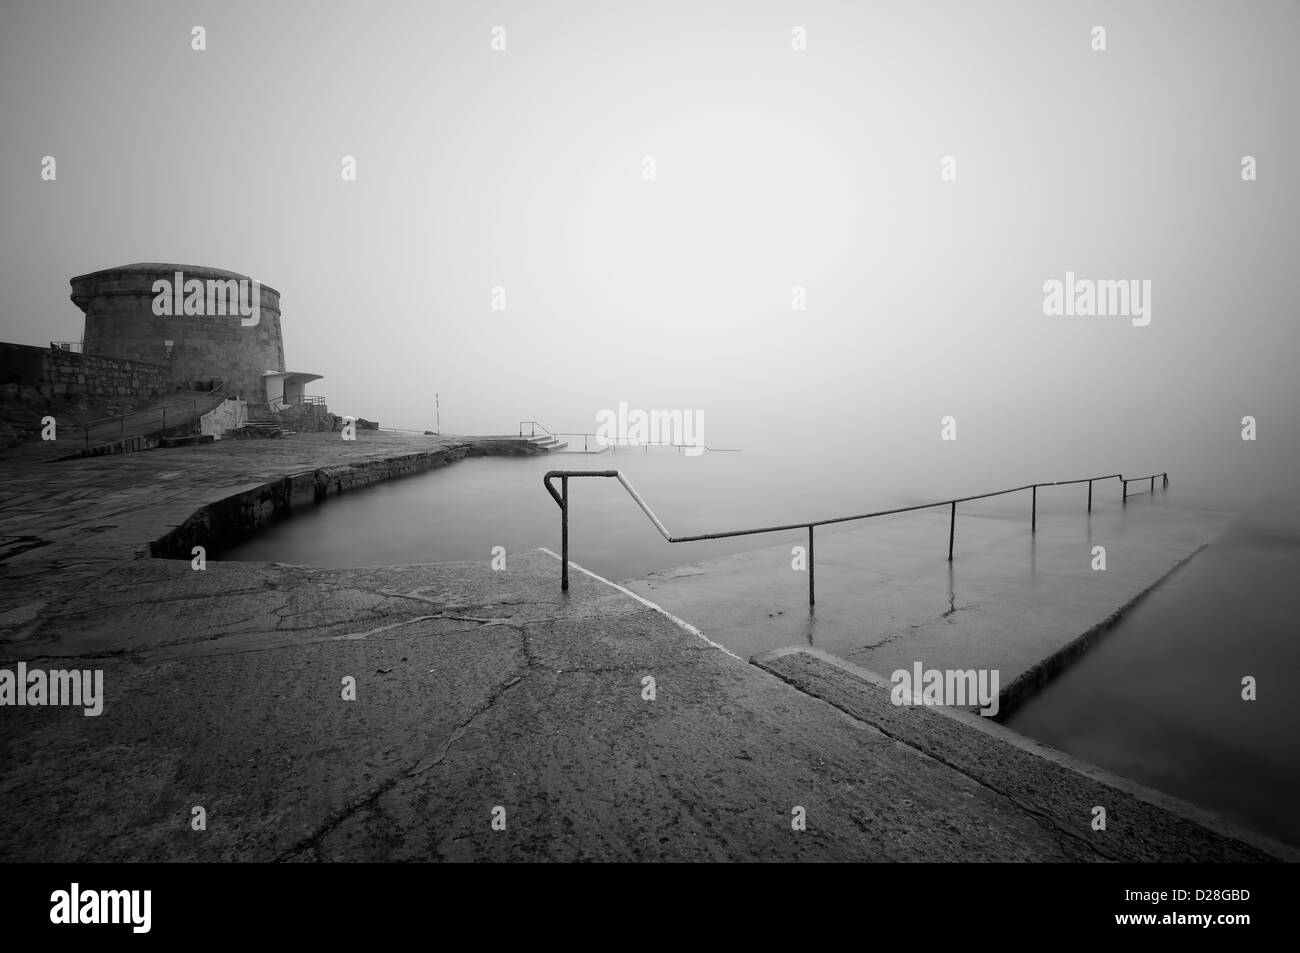 A peaceful bathing place at Martello tower early in the morning , Seapoint, Co. Dublin, Ireland in black and white. - Stock Image